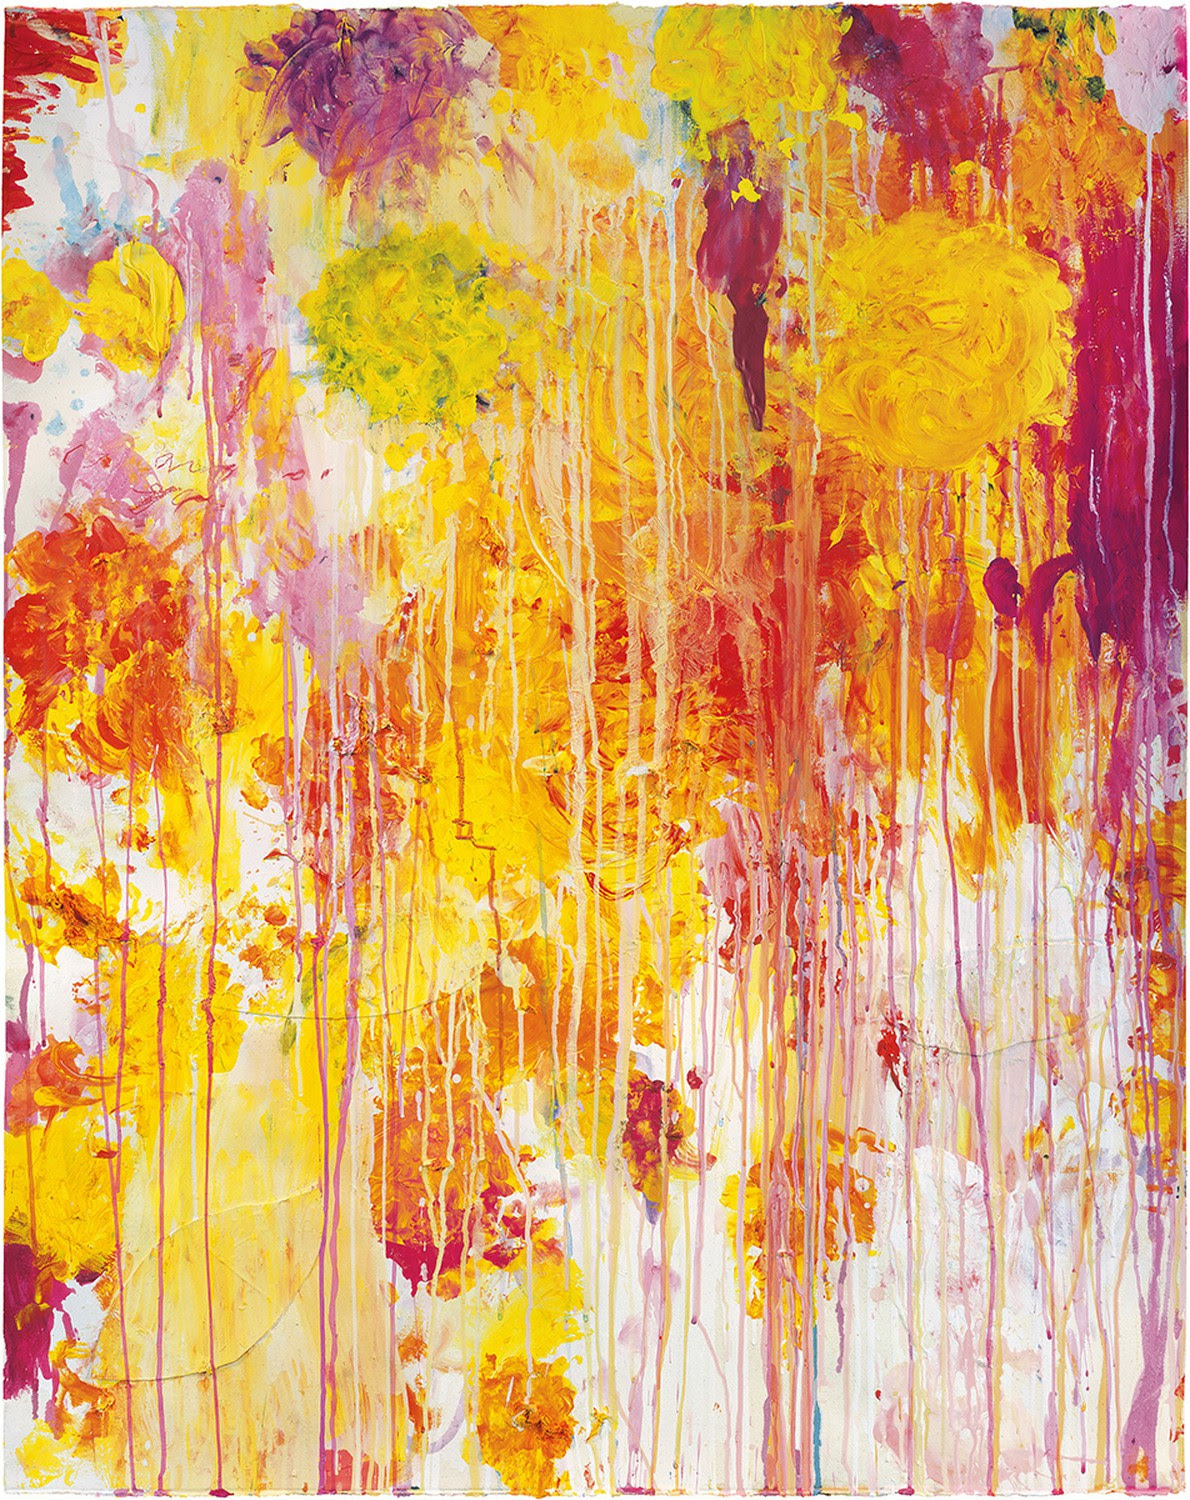 Cy Twombly, Untitled, 2001, acrylic, wax crayon, and cut-and-pasted paper on paper, 48 7/8 × 39 inches (124 × 99 cm) © Cy Twombly Foundation. Photo by Rob McKeever